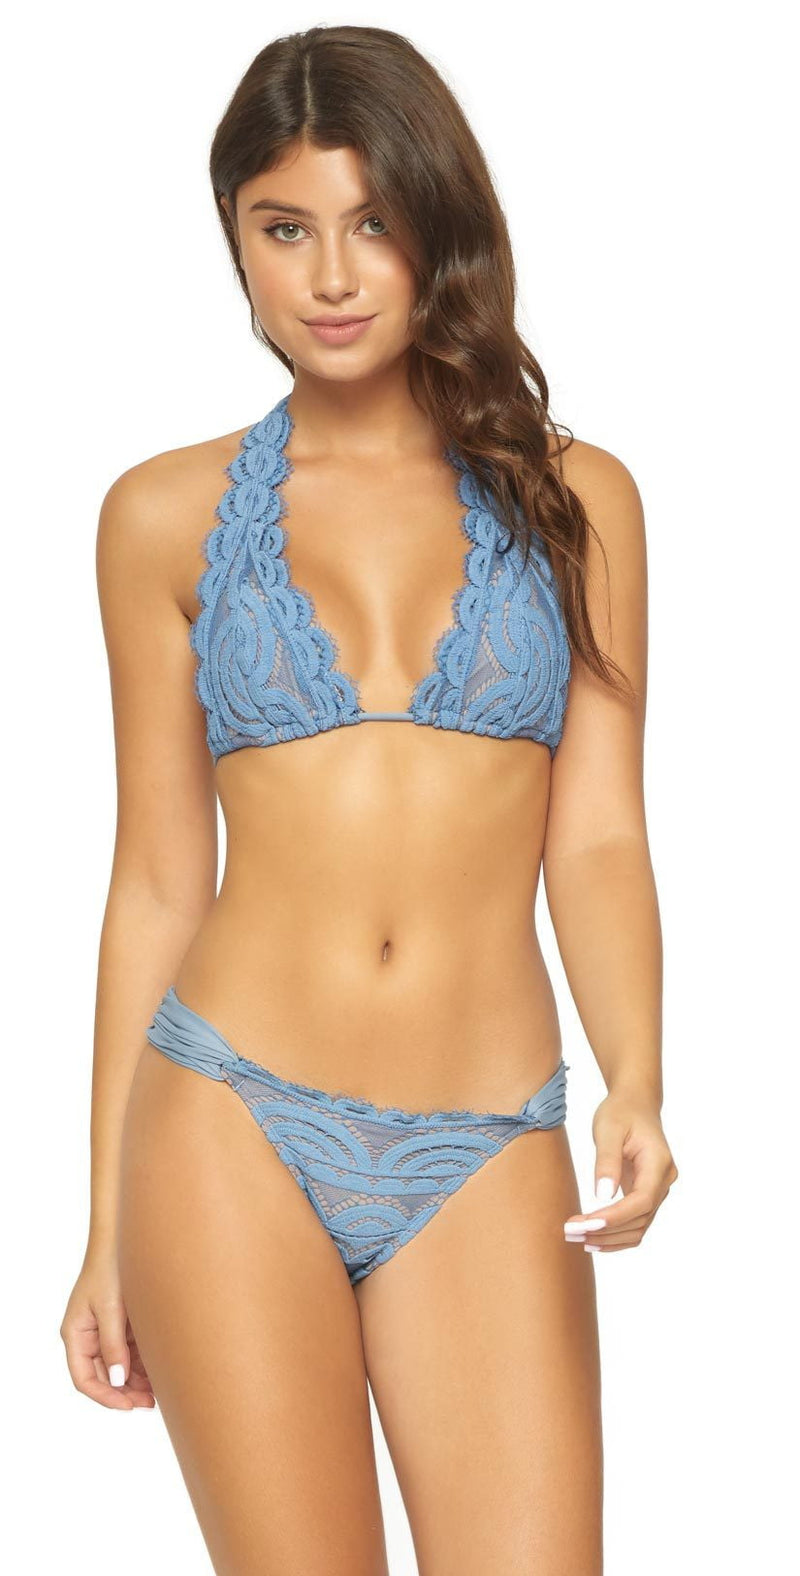 PilyQ Sky Blue Lace Fanned Full Bikini Bottom SKB-251F: